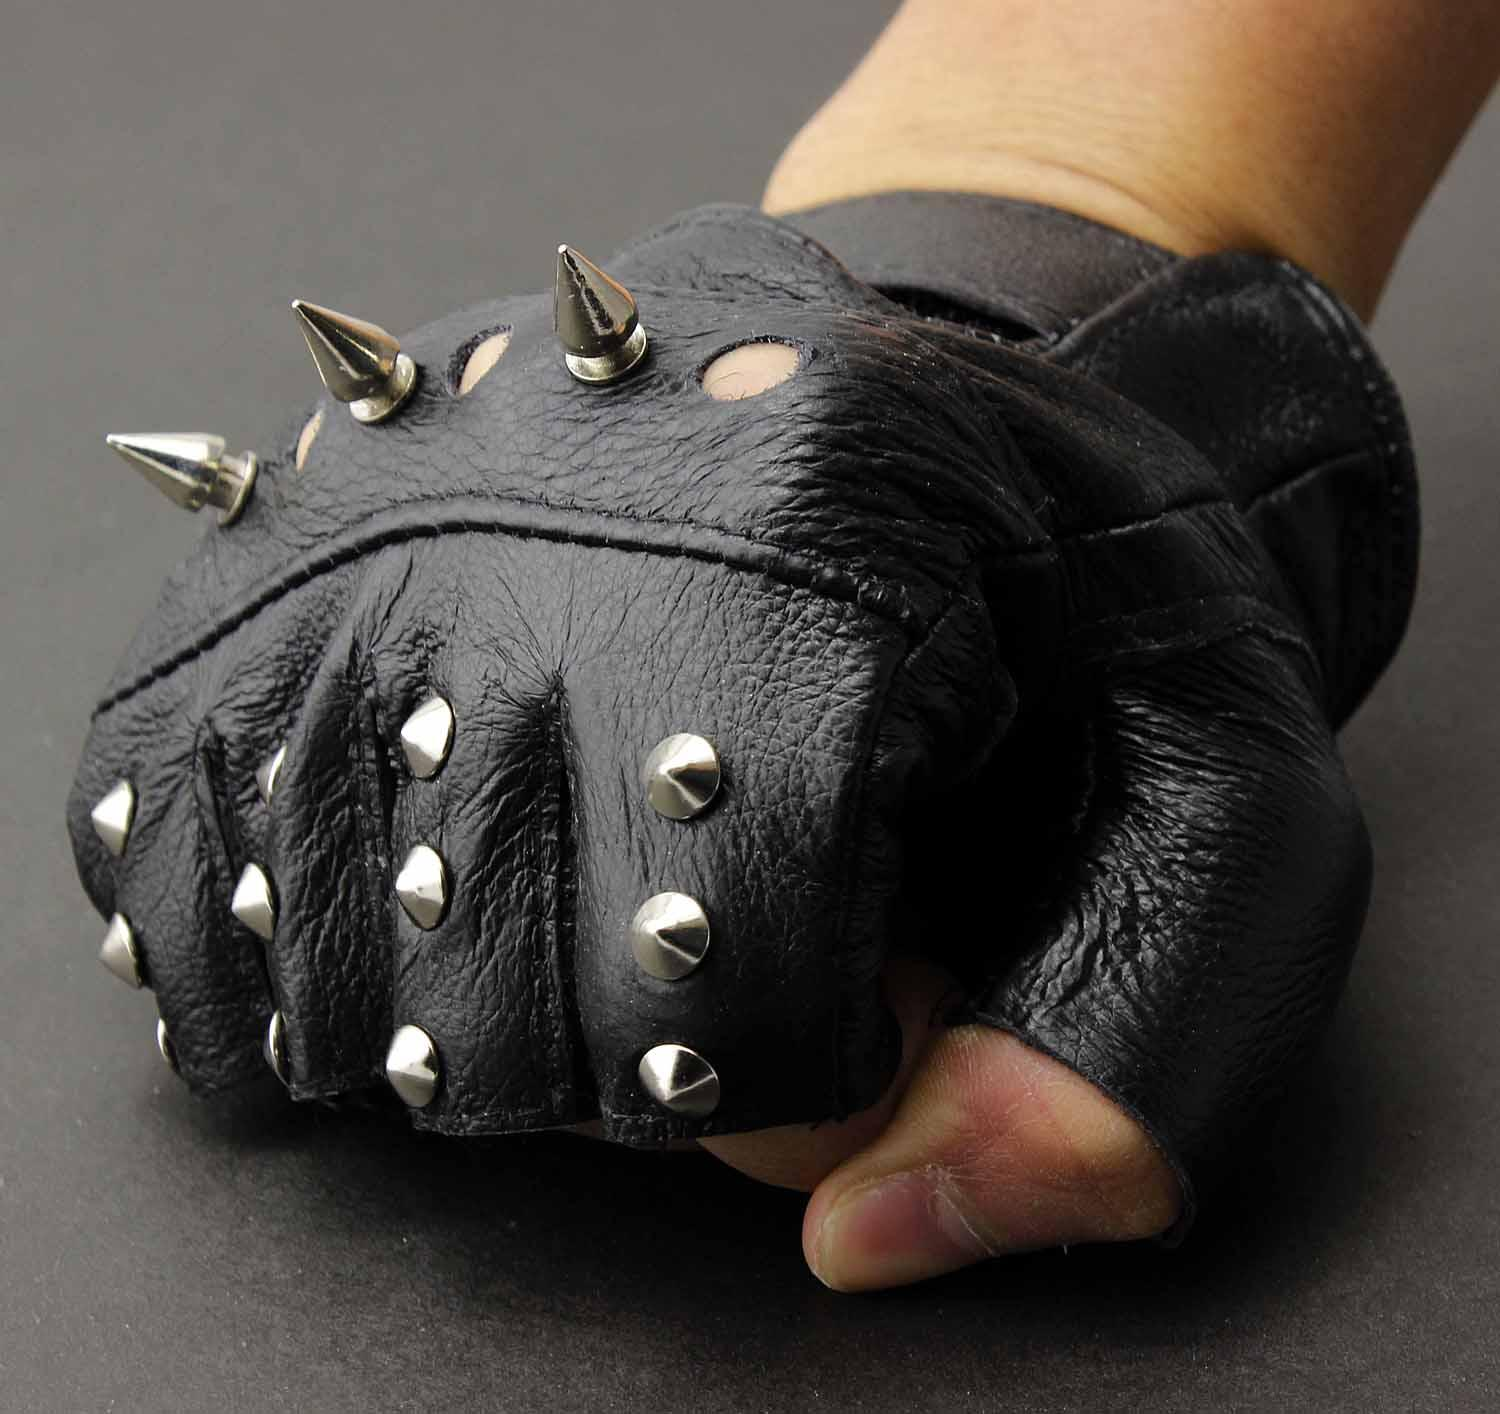 Buy leather motorcycle gloves - Men S Leather Metal Stud Biker Punk Rocker Driving Motorcycle Fingerless Gloves